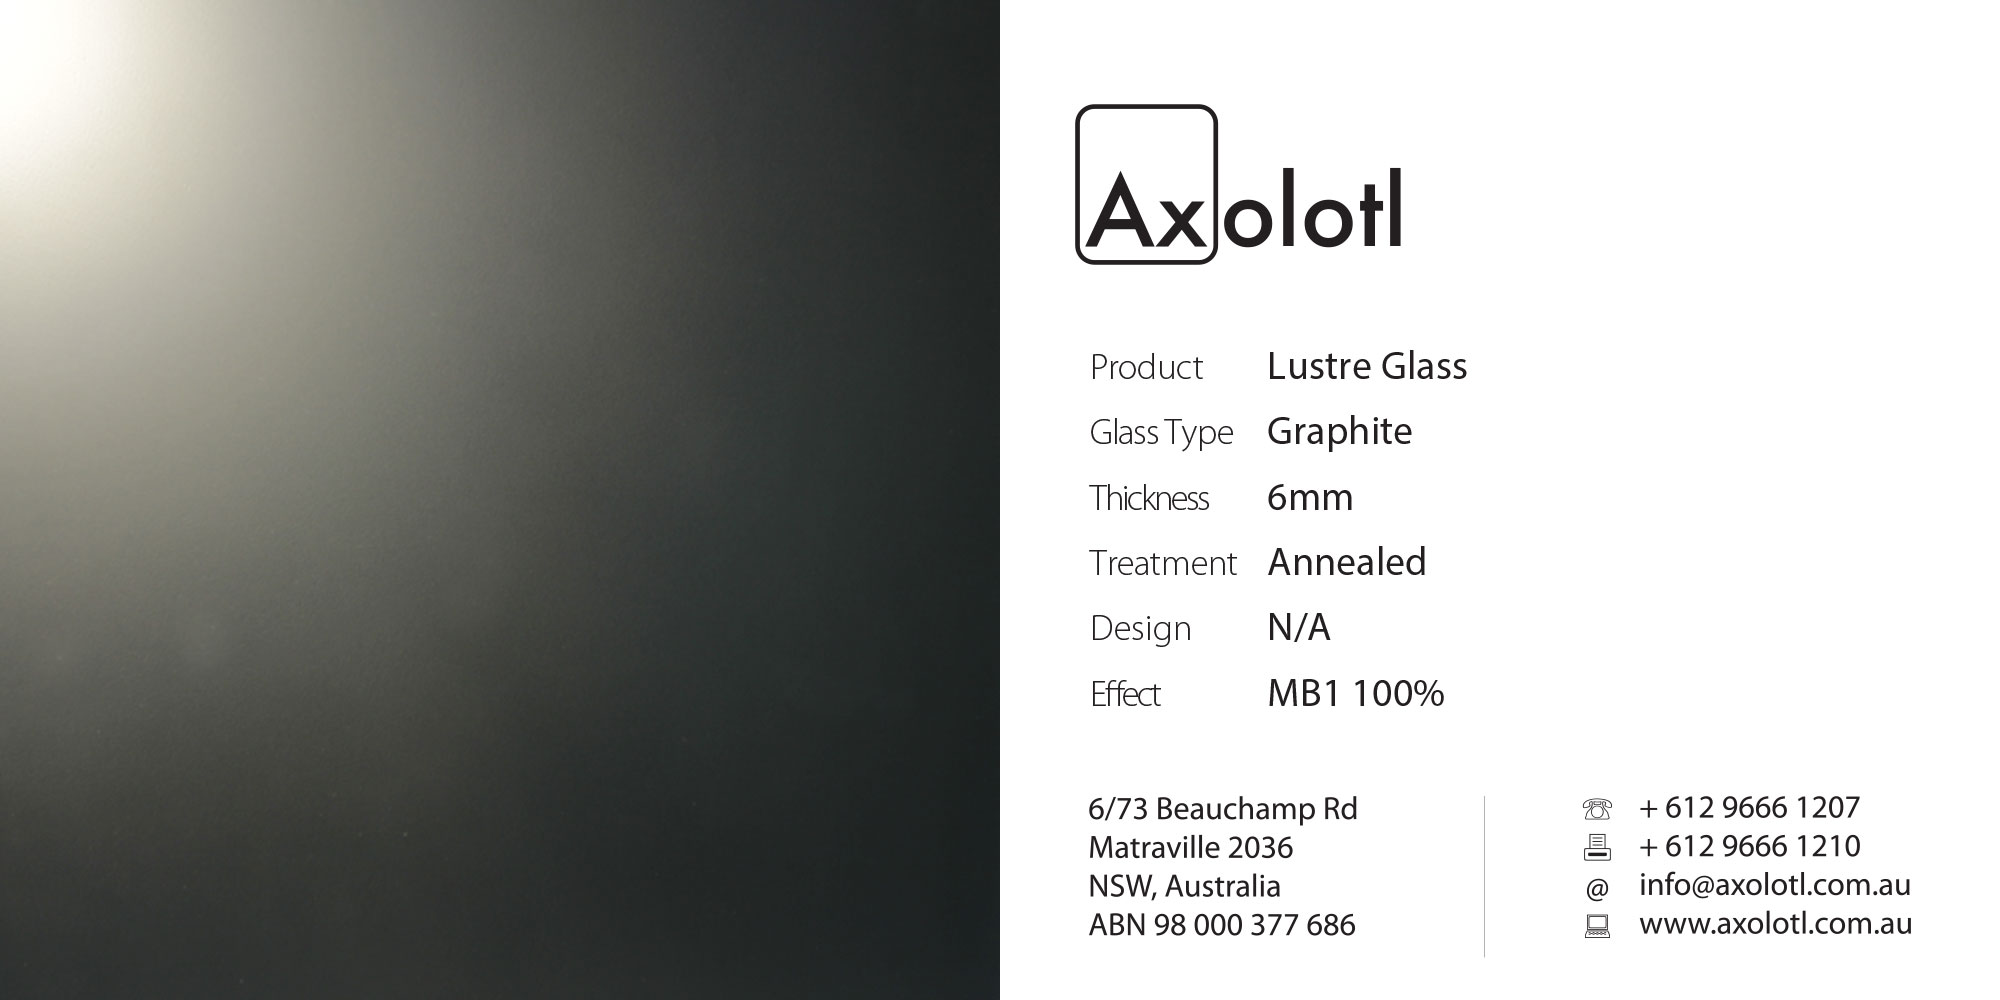 Axolotl_Glass_Lustre_Graphite.jpg